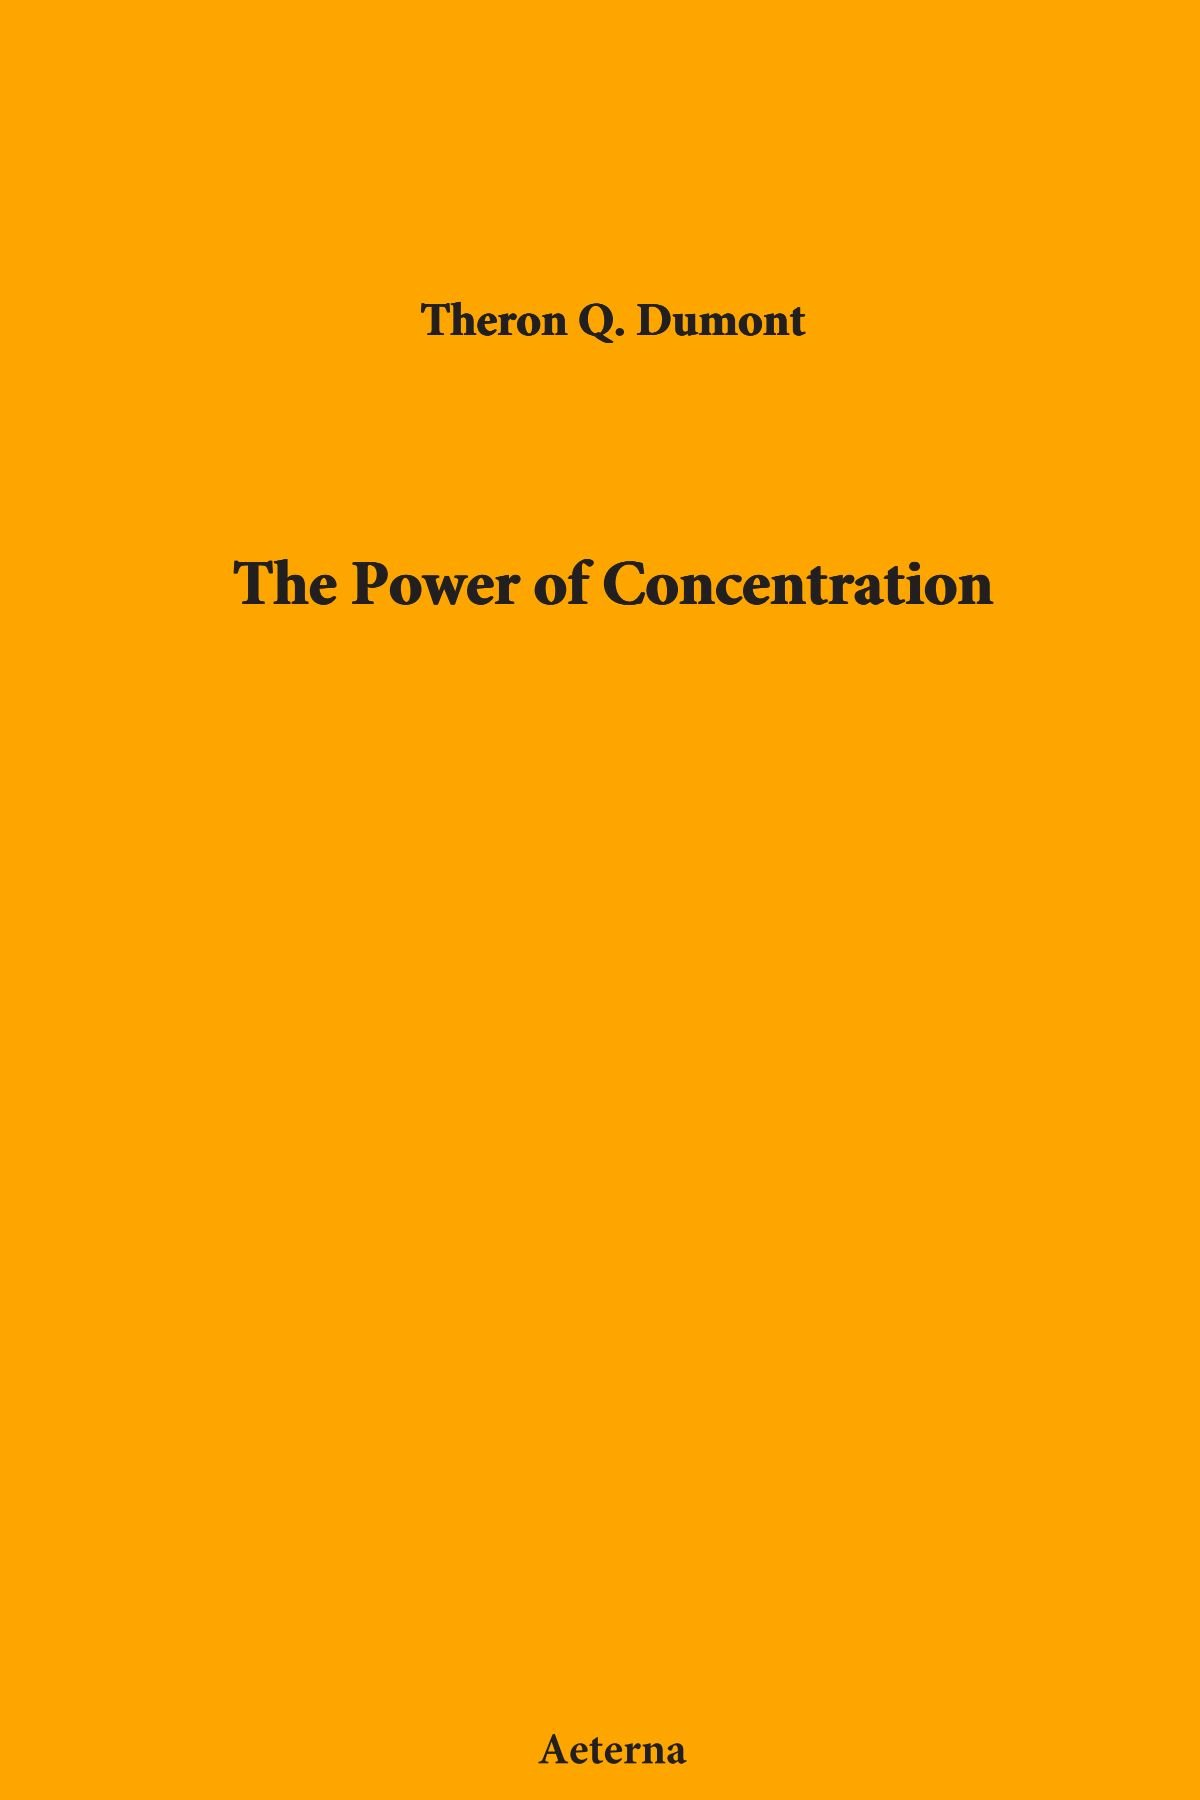 Download The Power of Concentration pdf